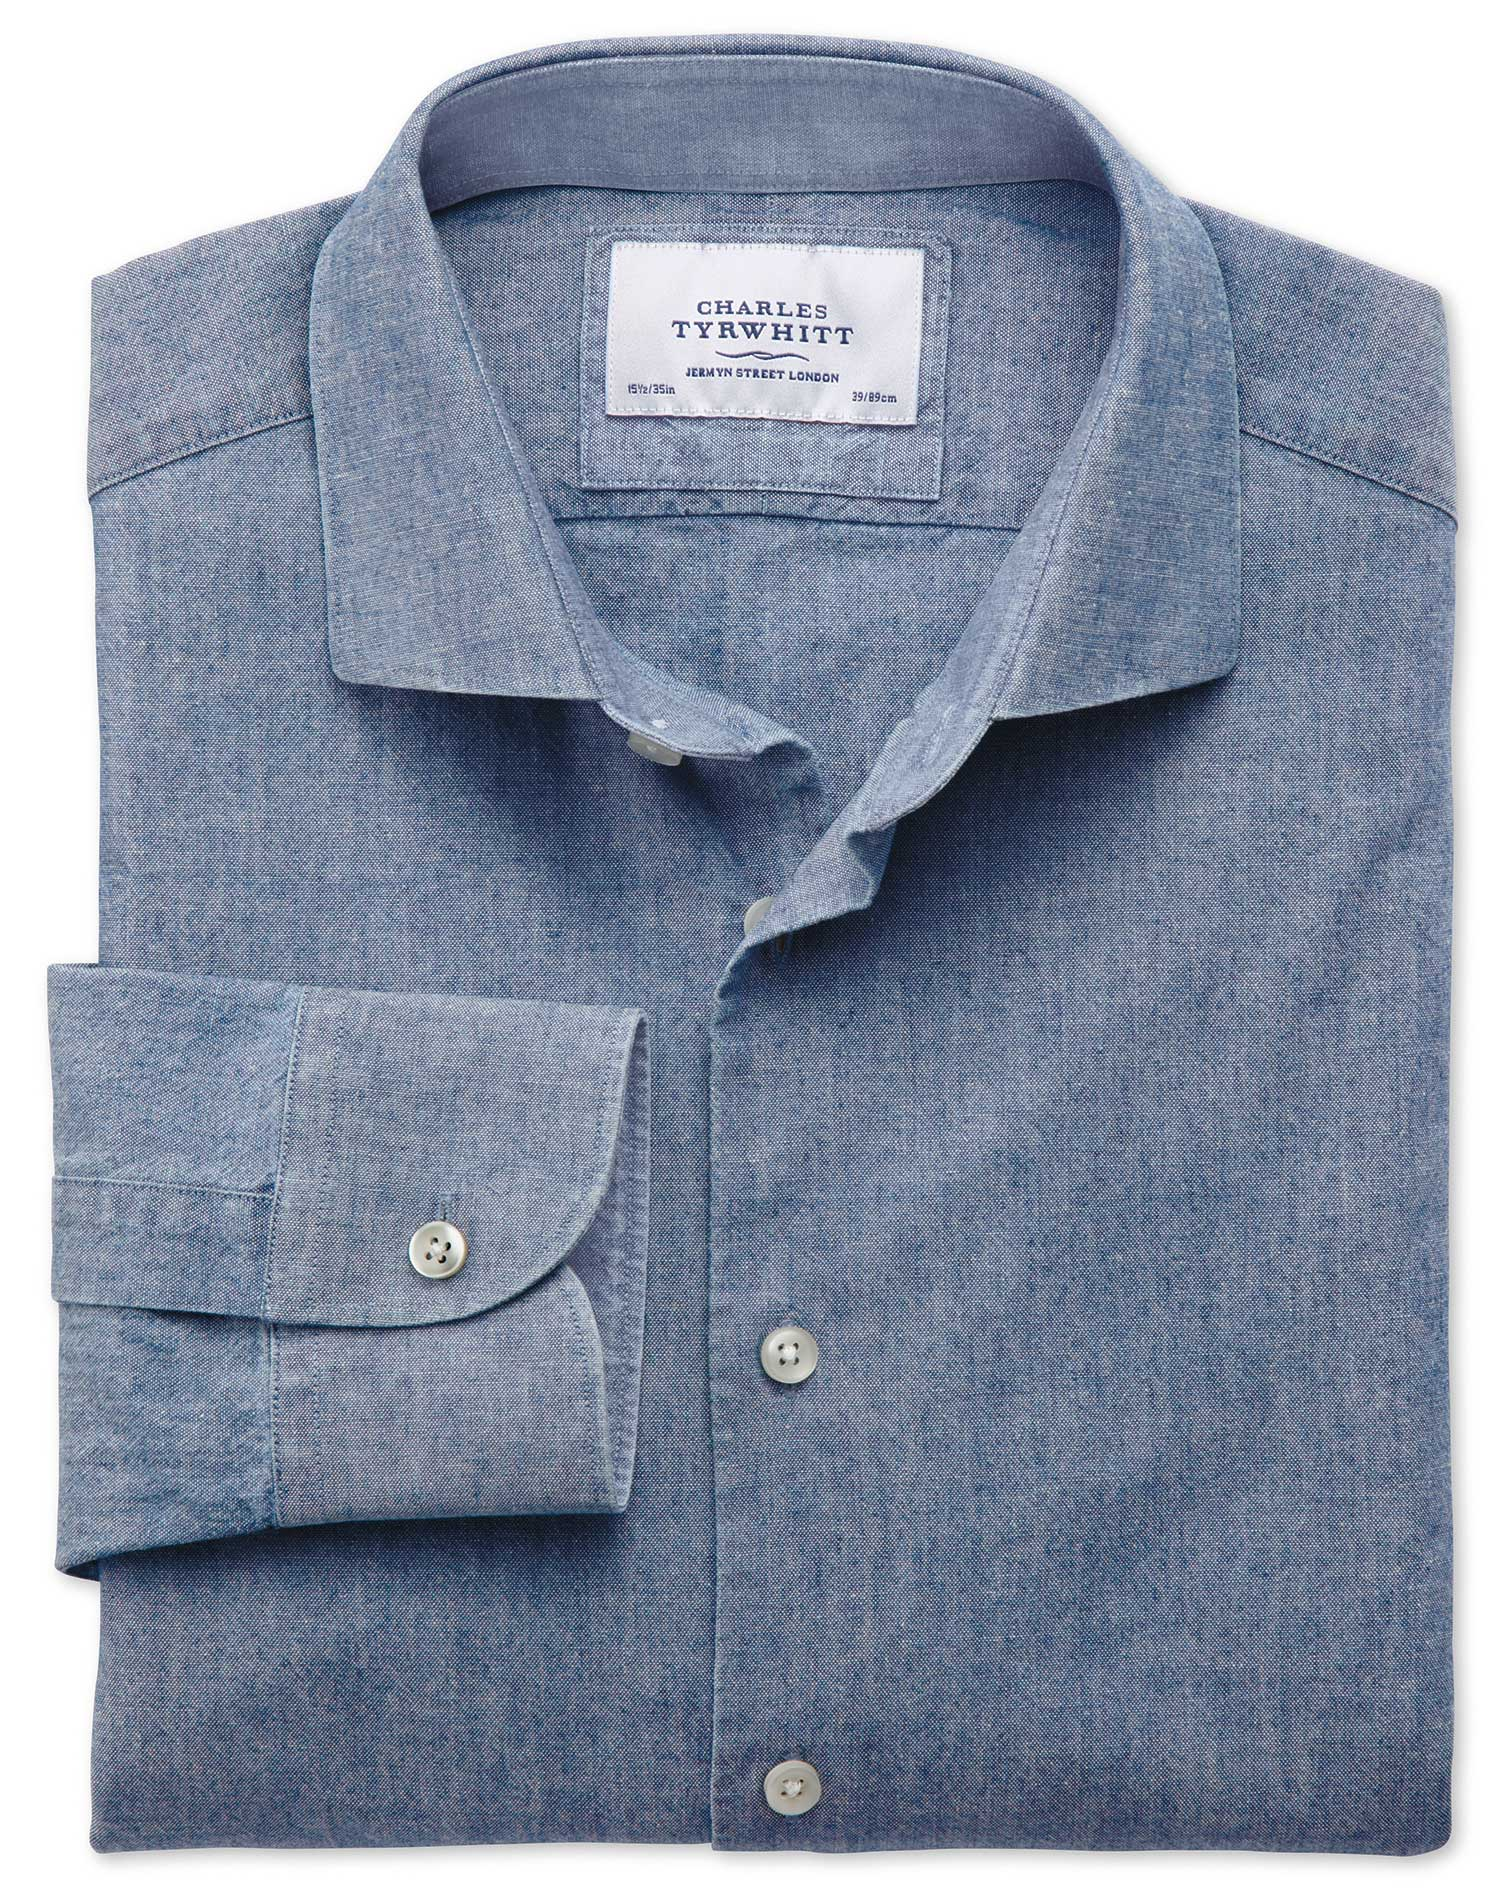 Slim Fit Semi-Cutaway Collar Business Casual Chambray Mid Blue Cotton Formal Shirt Single Cuff Size